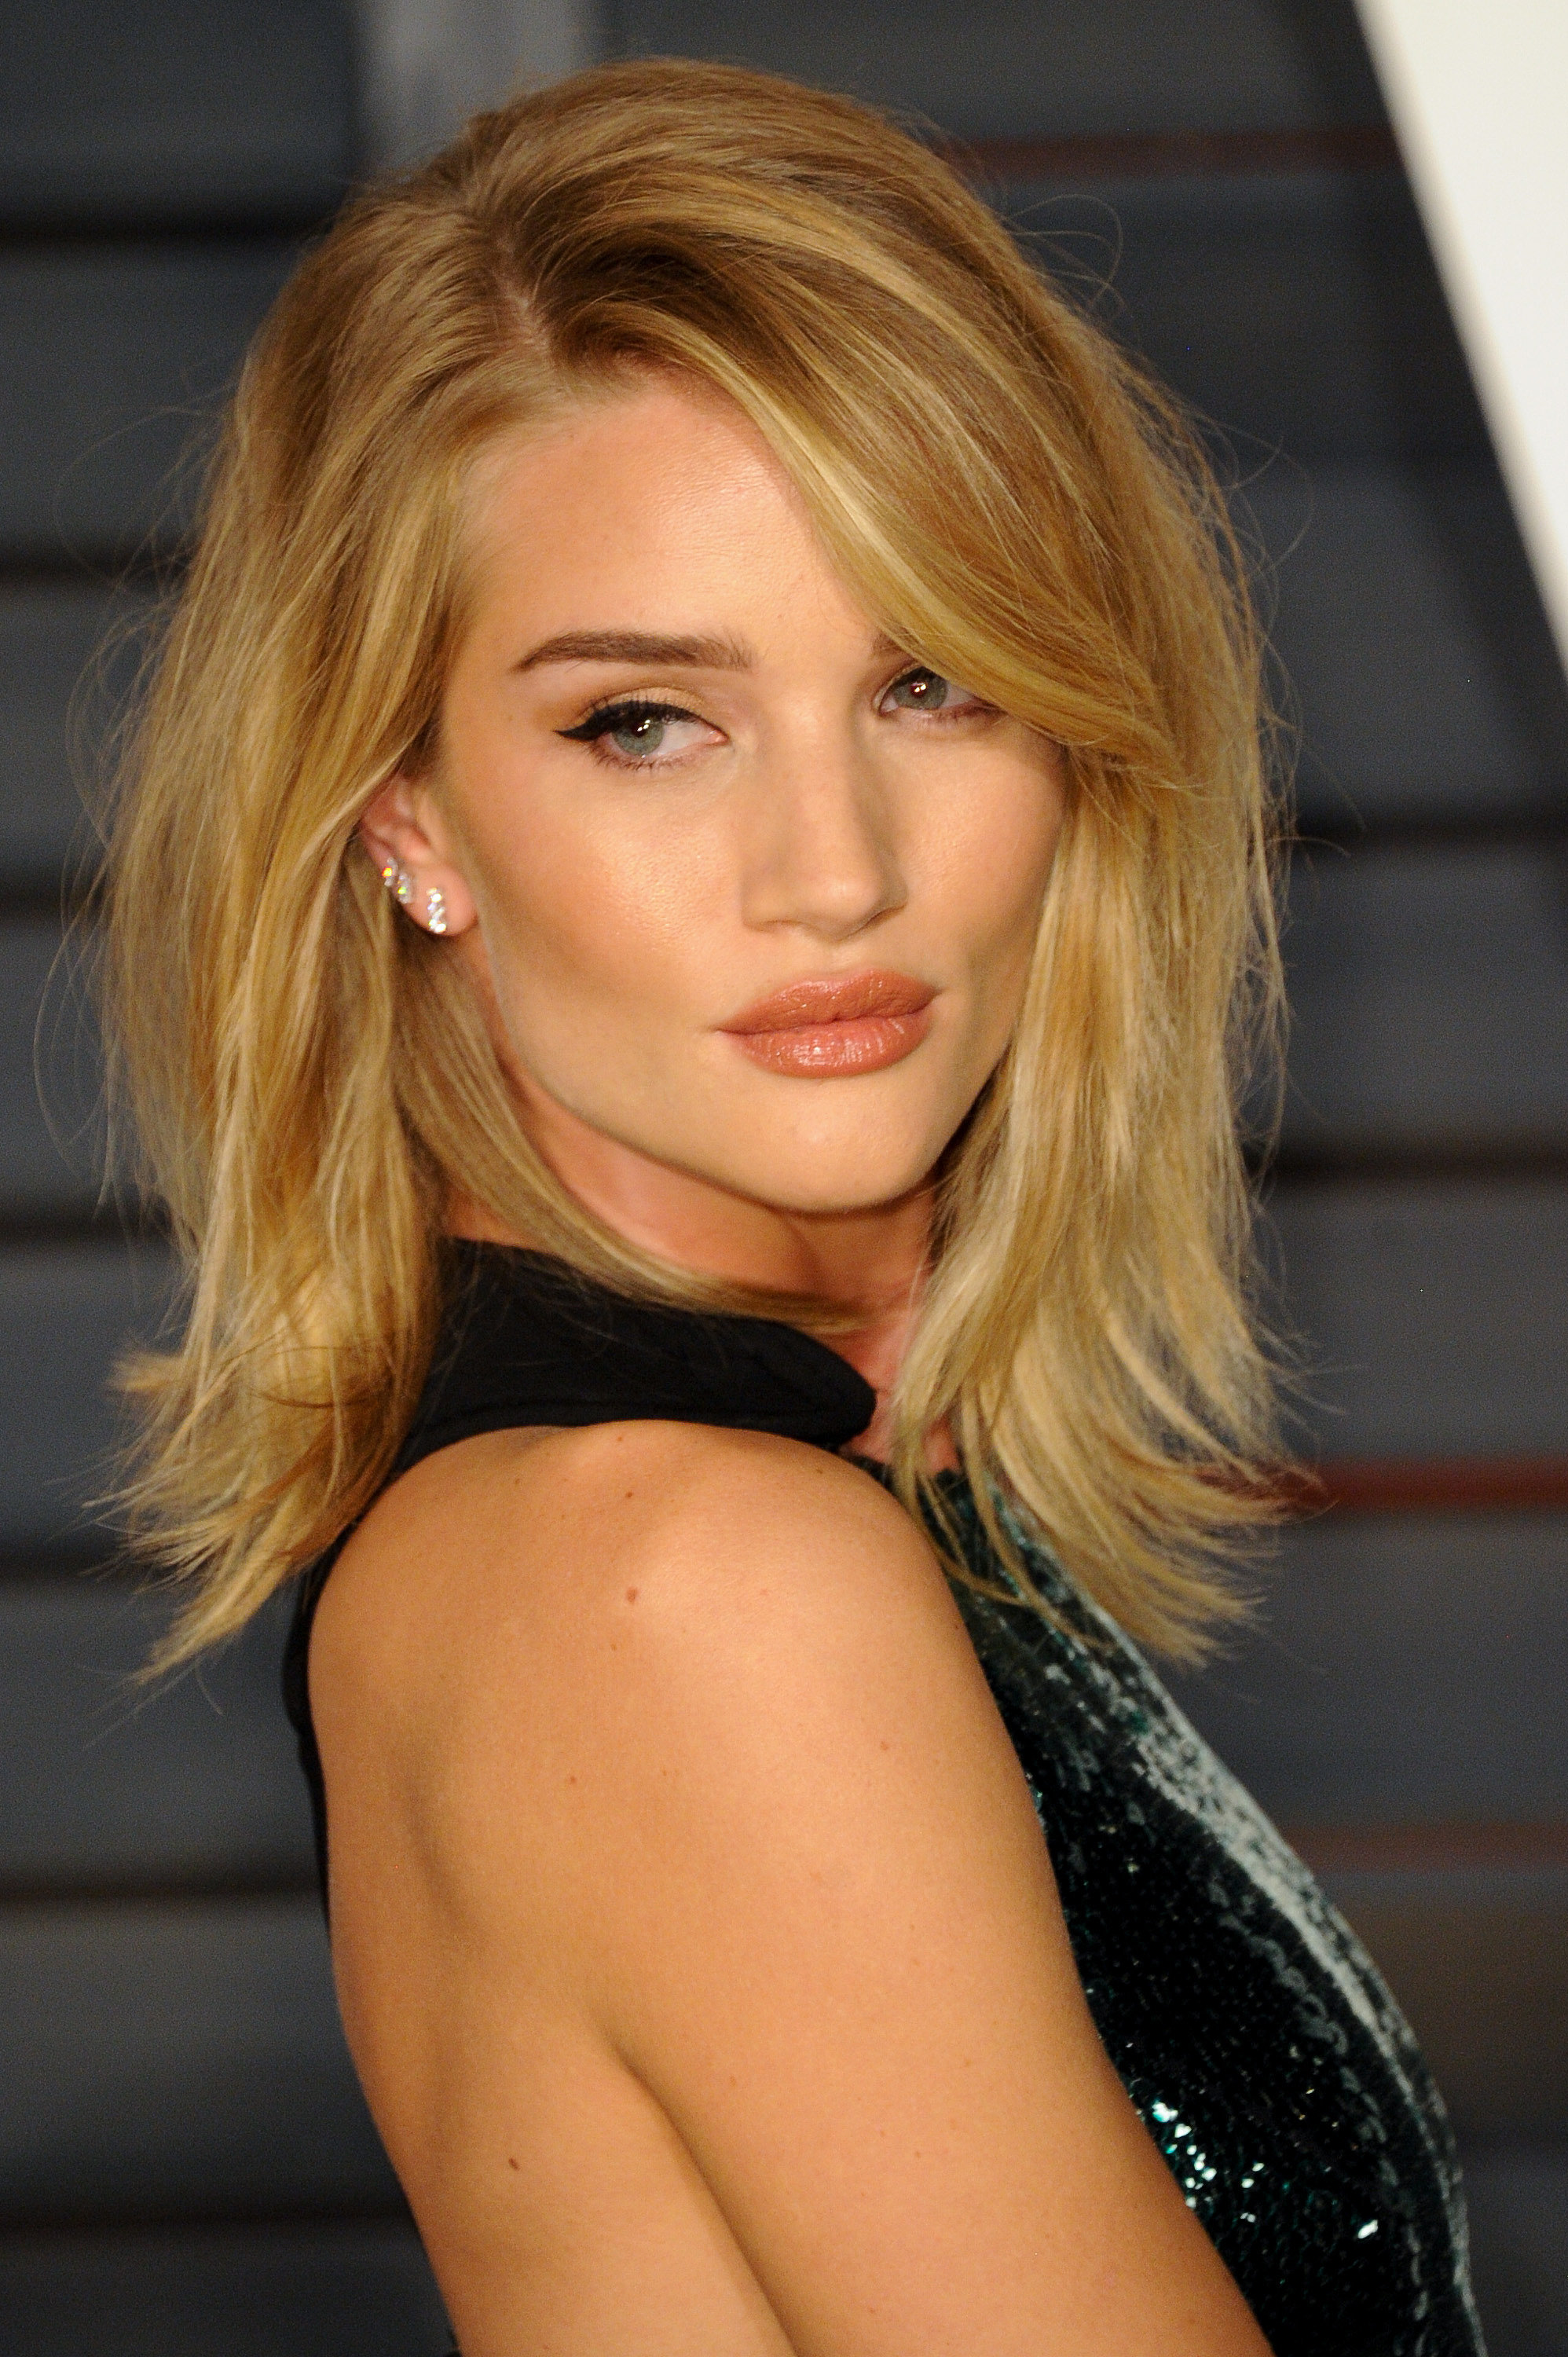 Rosie Huntington Whiteley The Clavicut The Best